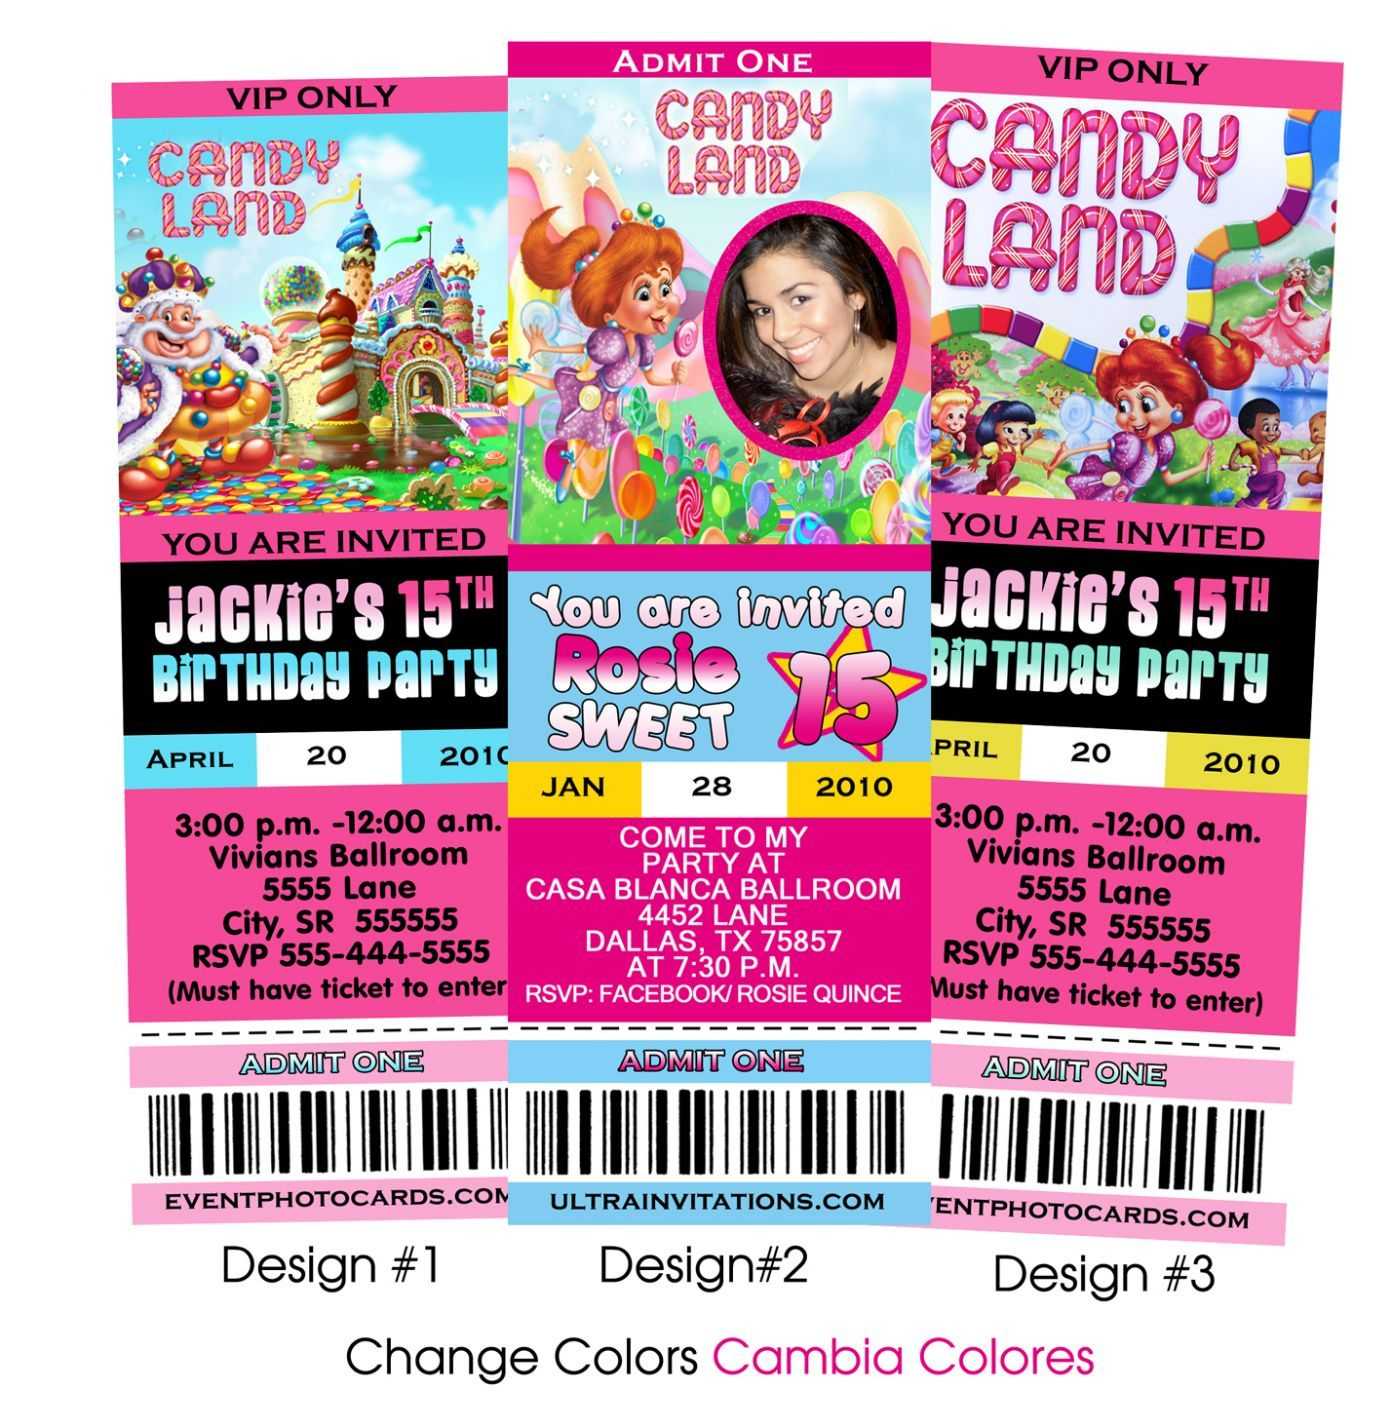 Candyland Ticket Invitation, Candyland Inivitation - Candyland Pass ...